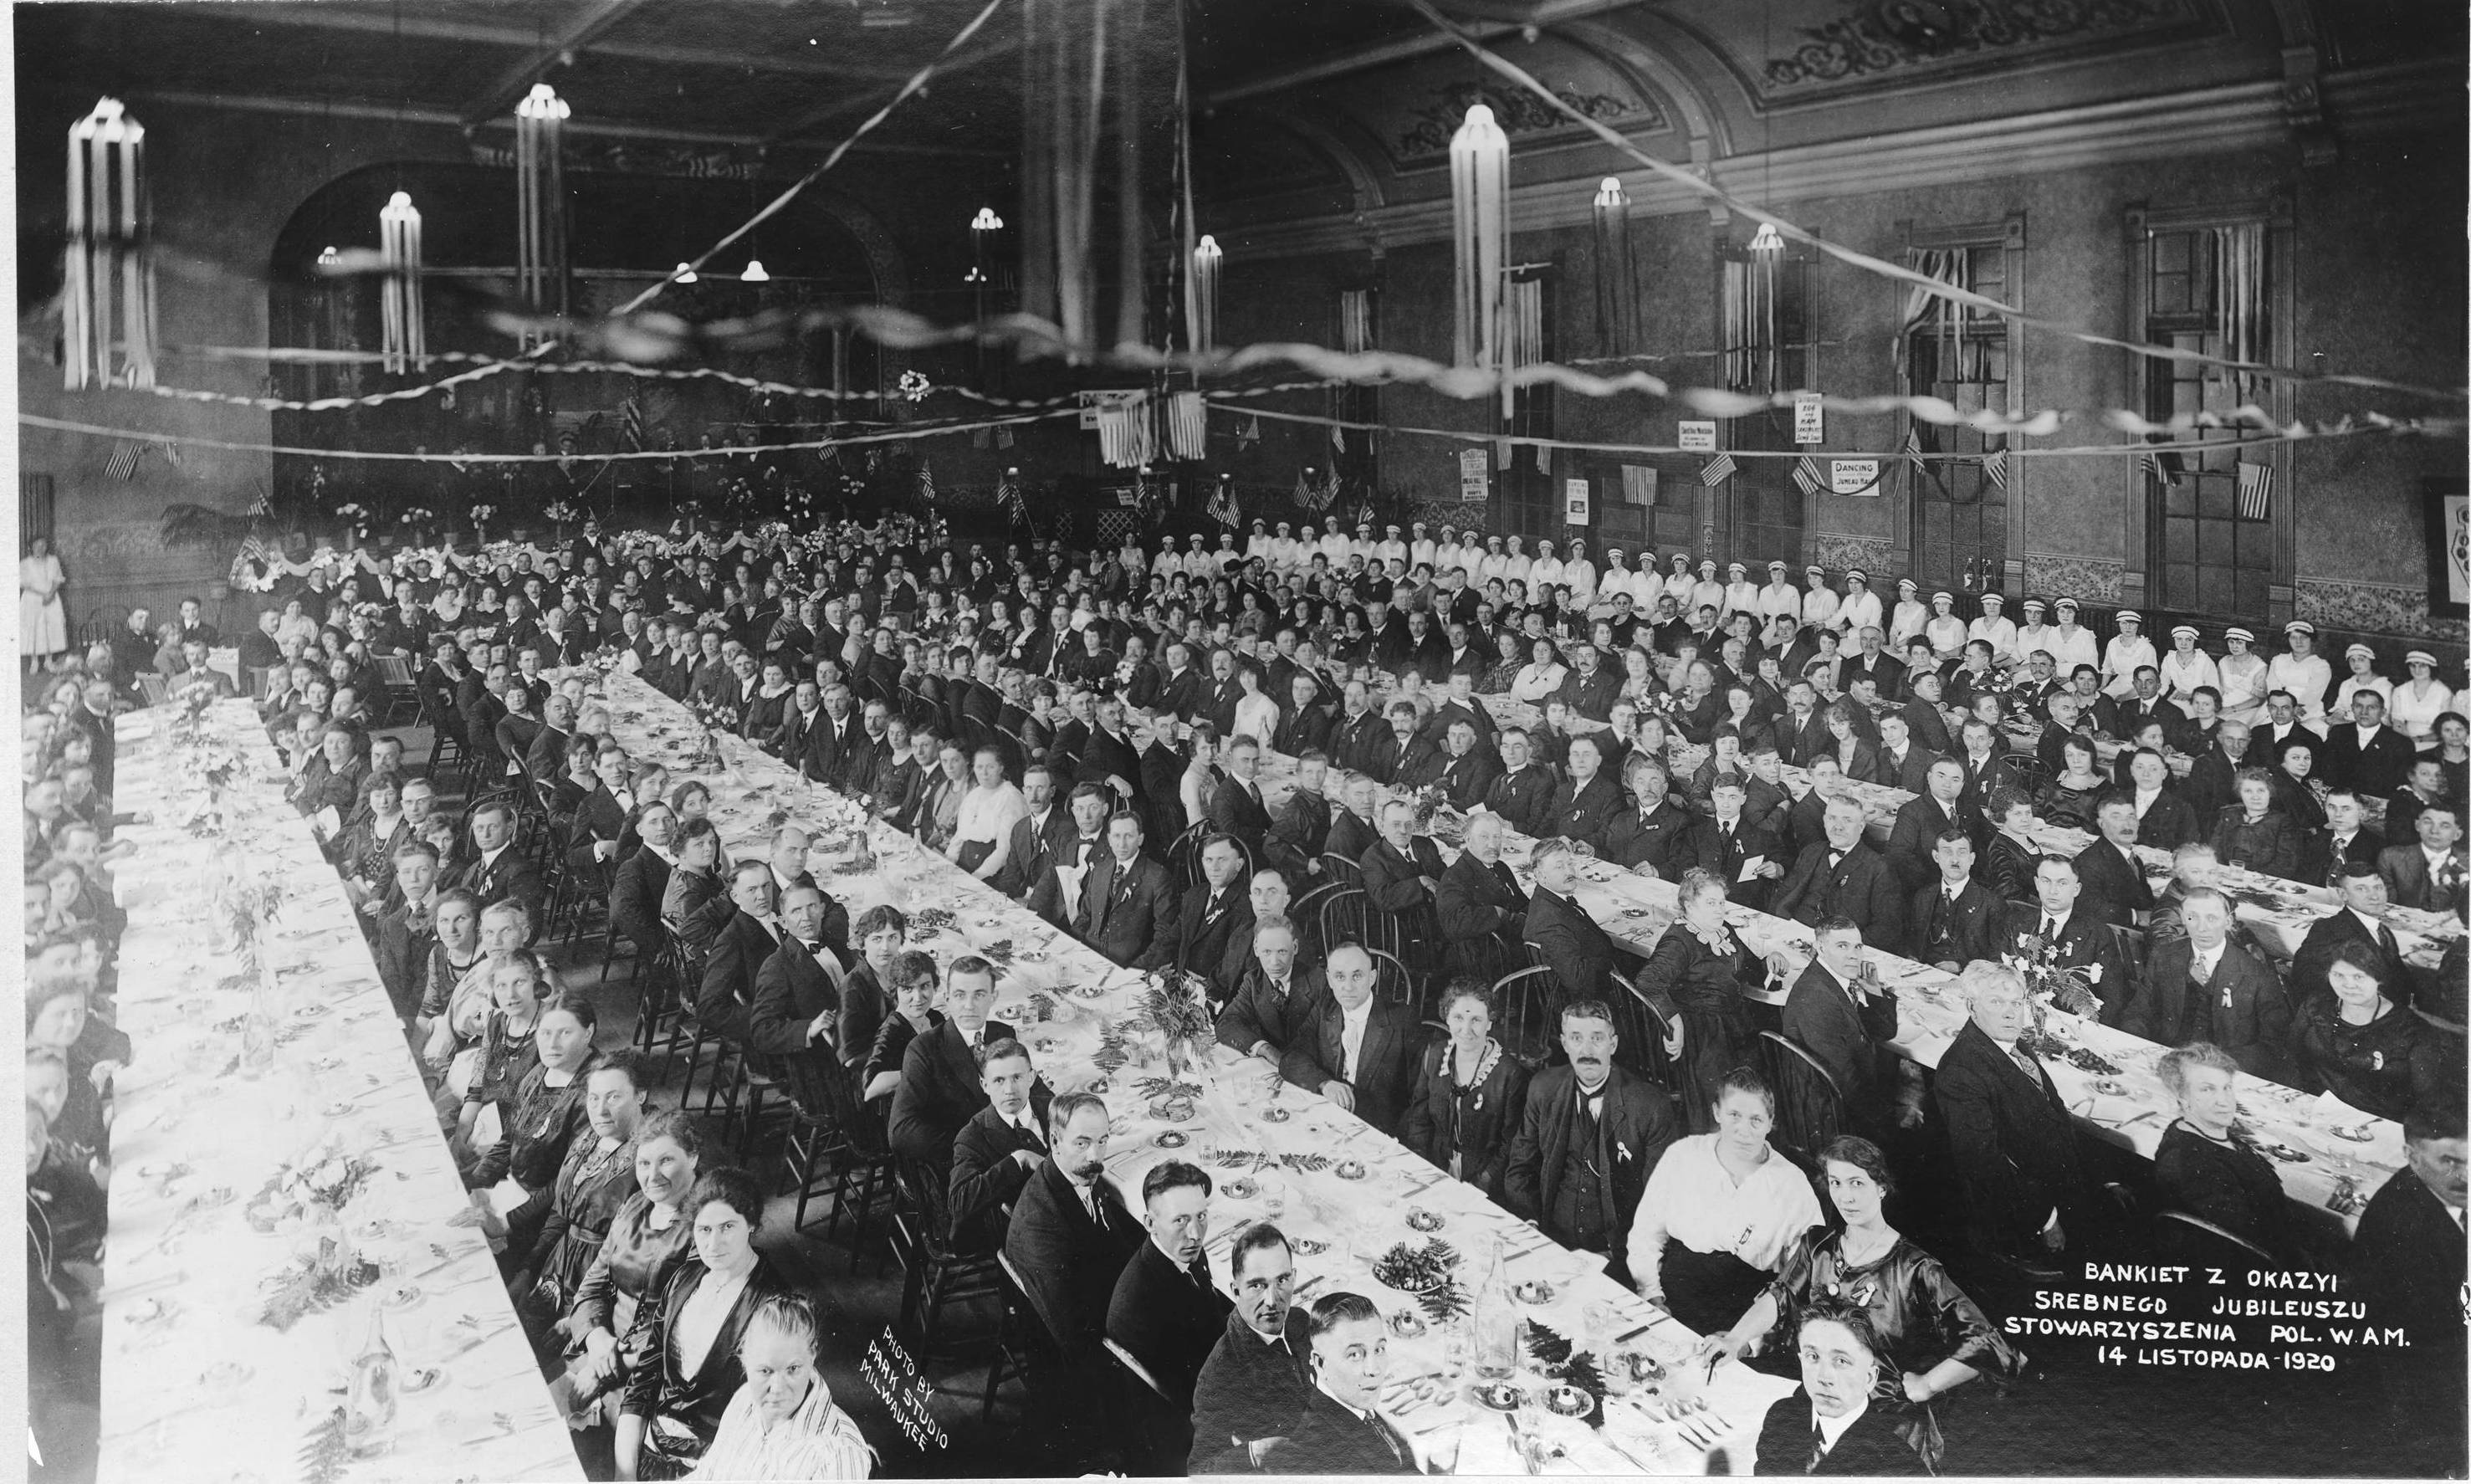 <table class=&quot;lightbox&quot;><tr><td colspan=2 class=&quot;lightbox-title&quot;>Association of Poles in America Banquet</td></tr><tr><td colspan=2 class=&quot;lightbox-caption&quot;>1920 photograph of attendees at the Silver Jubilee Banquet of the Association of Poles in America Banquet.</td></tr><tr><td colspan=2 class=&quot;lightbox-spacer&quot;></td></tr><tr class=&quot;lightbox-detail&quot;><td class=&quot;cell-title&quot;>Source: </td><td class=&quot;cell-value&quot;>From the Roman B. Kwaniewski Photographs Collection, Archives. University of Wisconsin-Milwaukee Libraries. </td></tr><tr class=&quot;filler-row&quot;><td colspan=2>&nbsp;</td></tr></table>